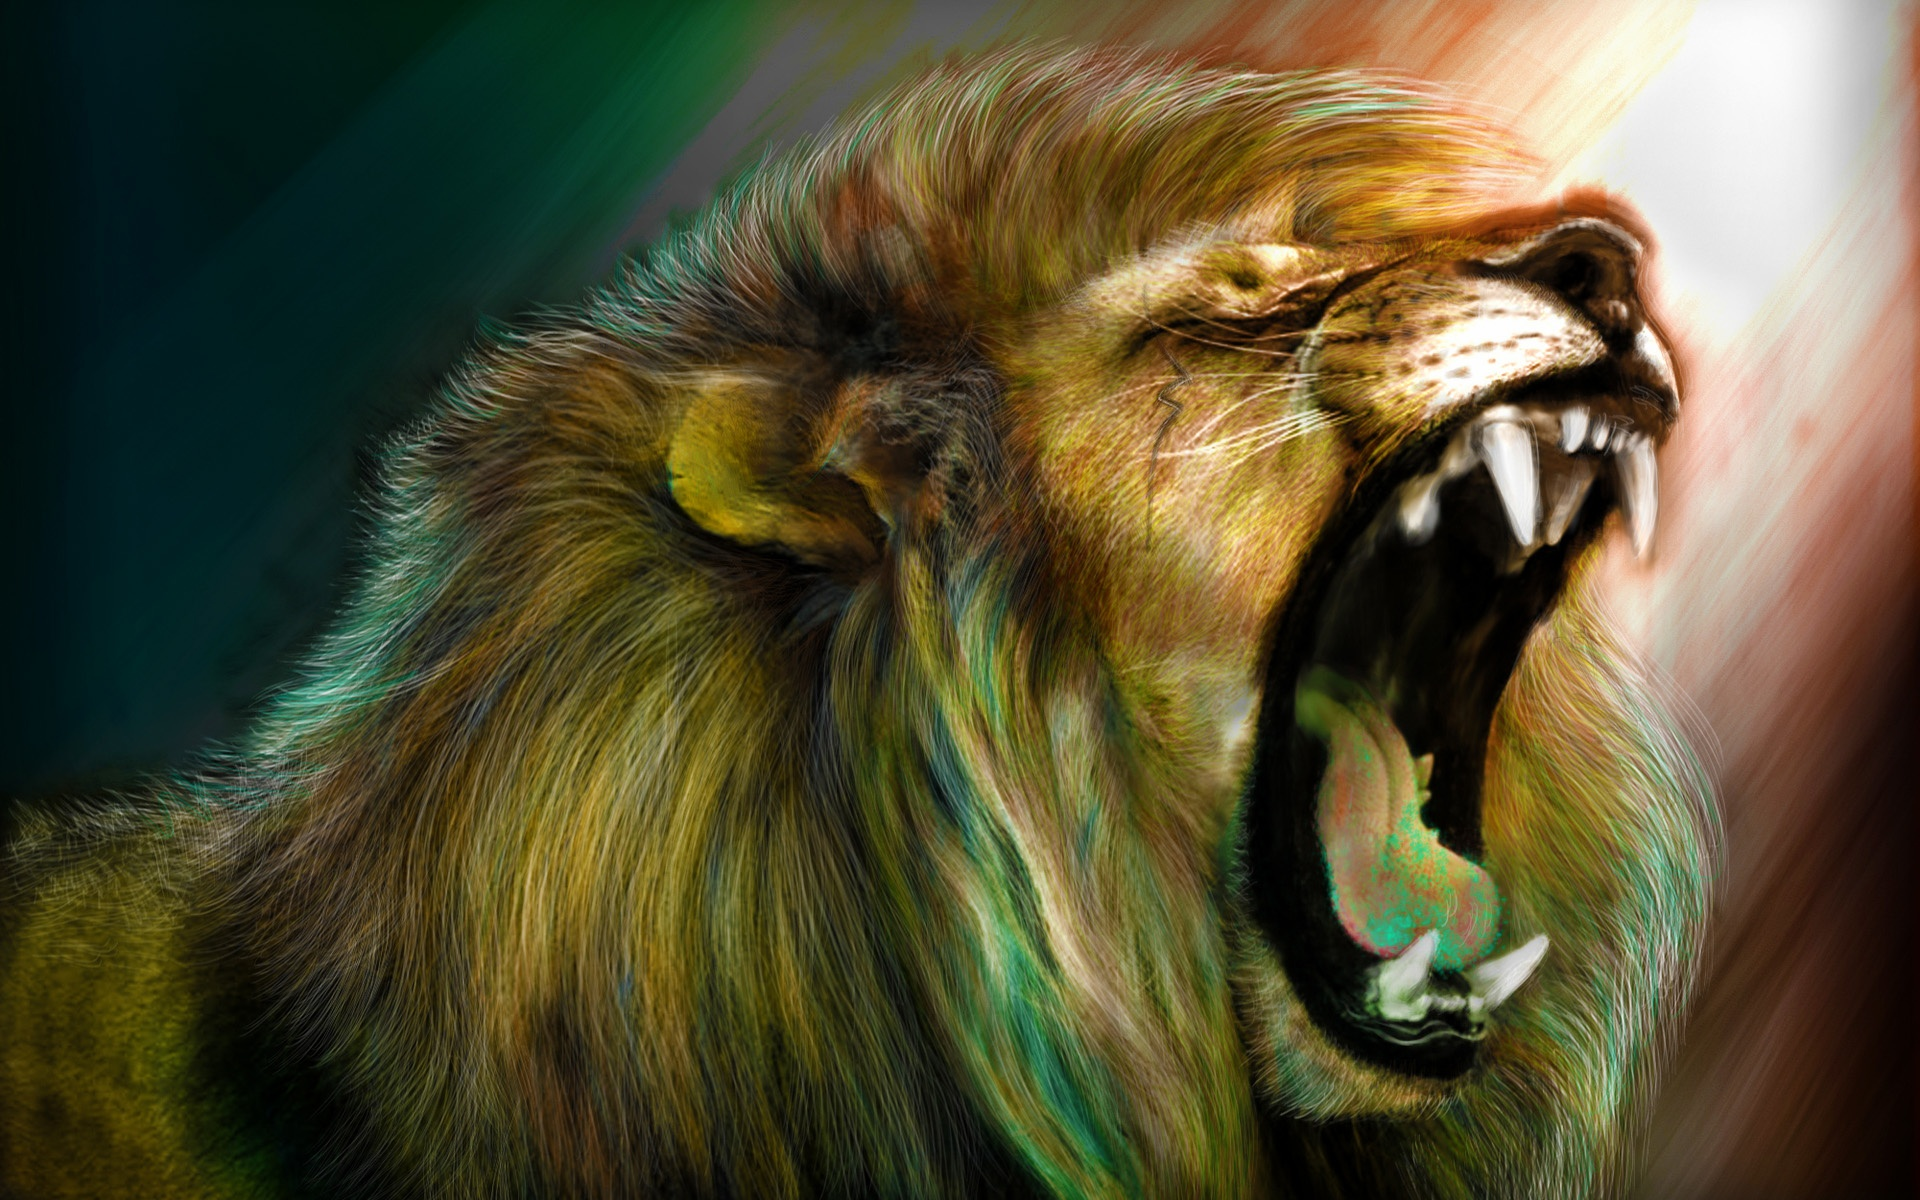 Roaring Lion Wallpaper - WallpaperSafari - photo#23